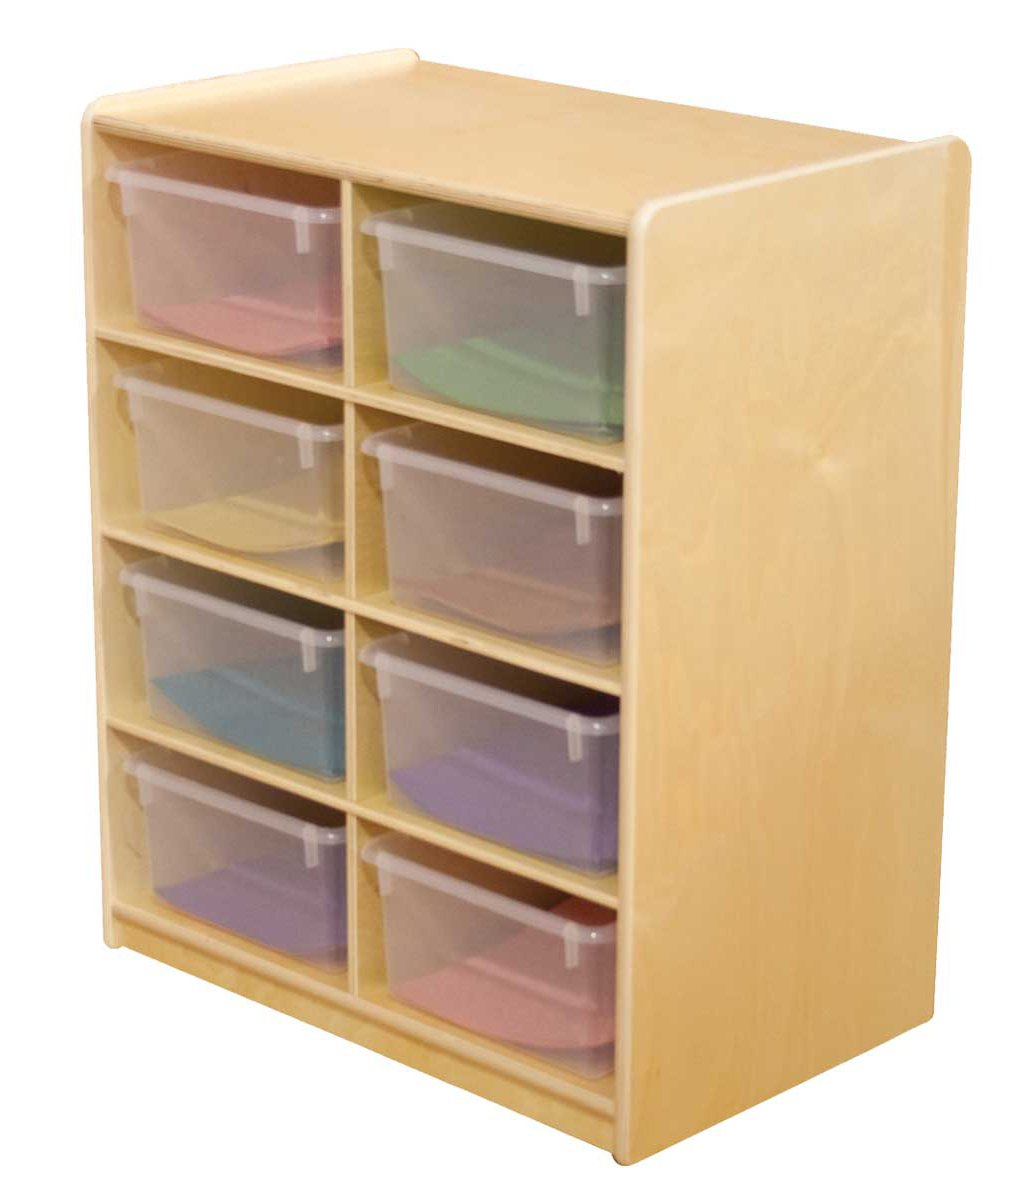 "(8) 5"" Letter Tray Storage Unit with Translucent Trays"